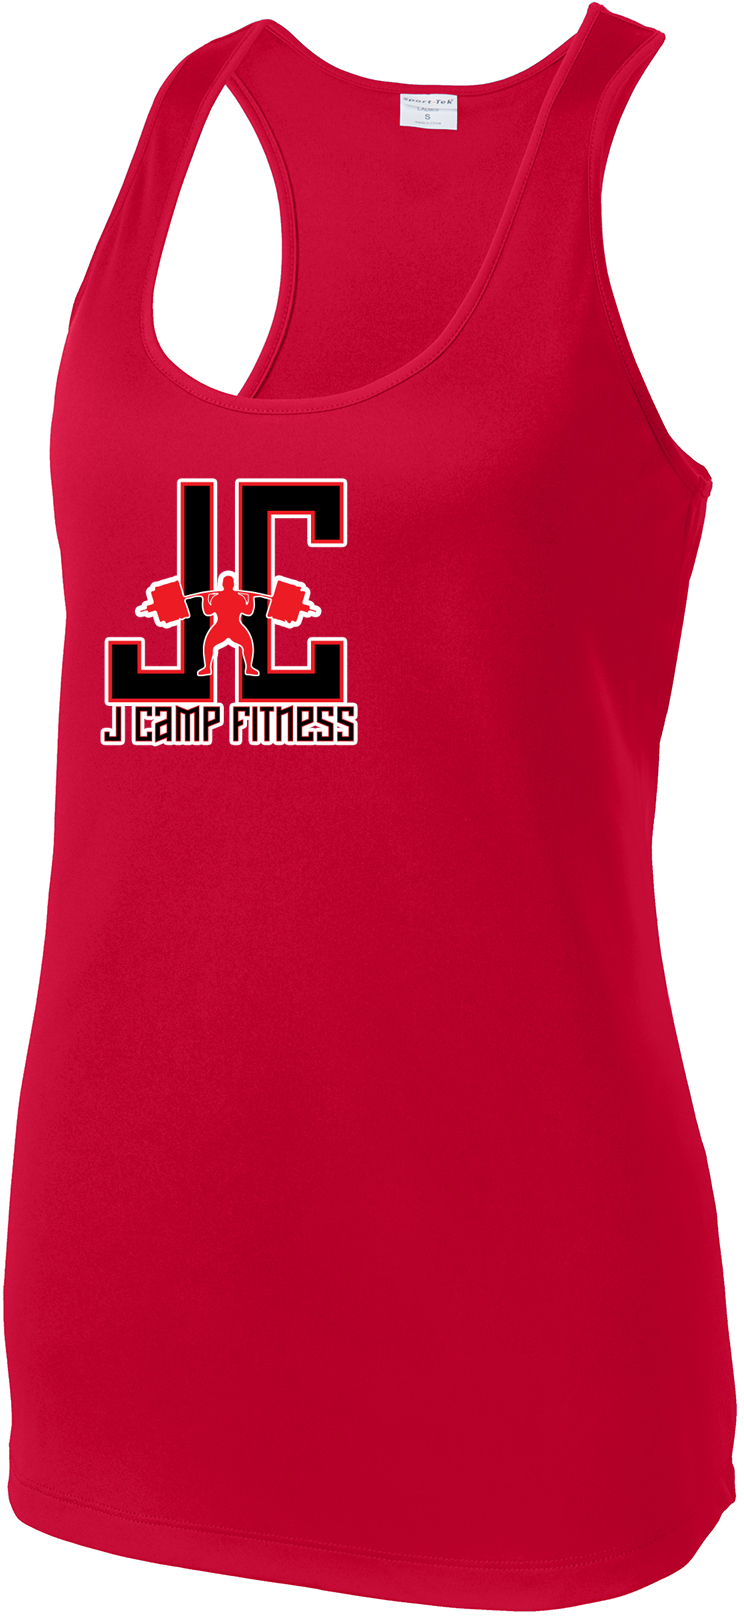 J Camp Fitness Women's Racerback Tank